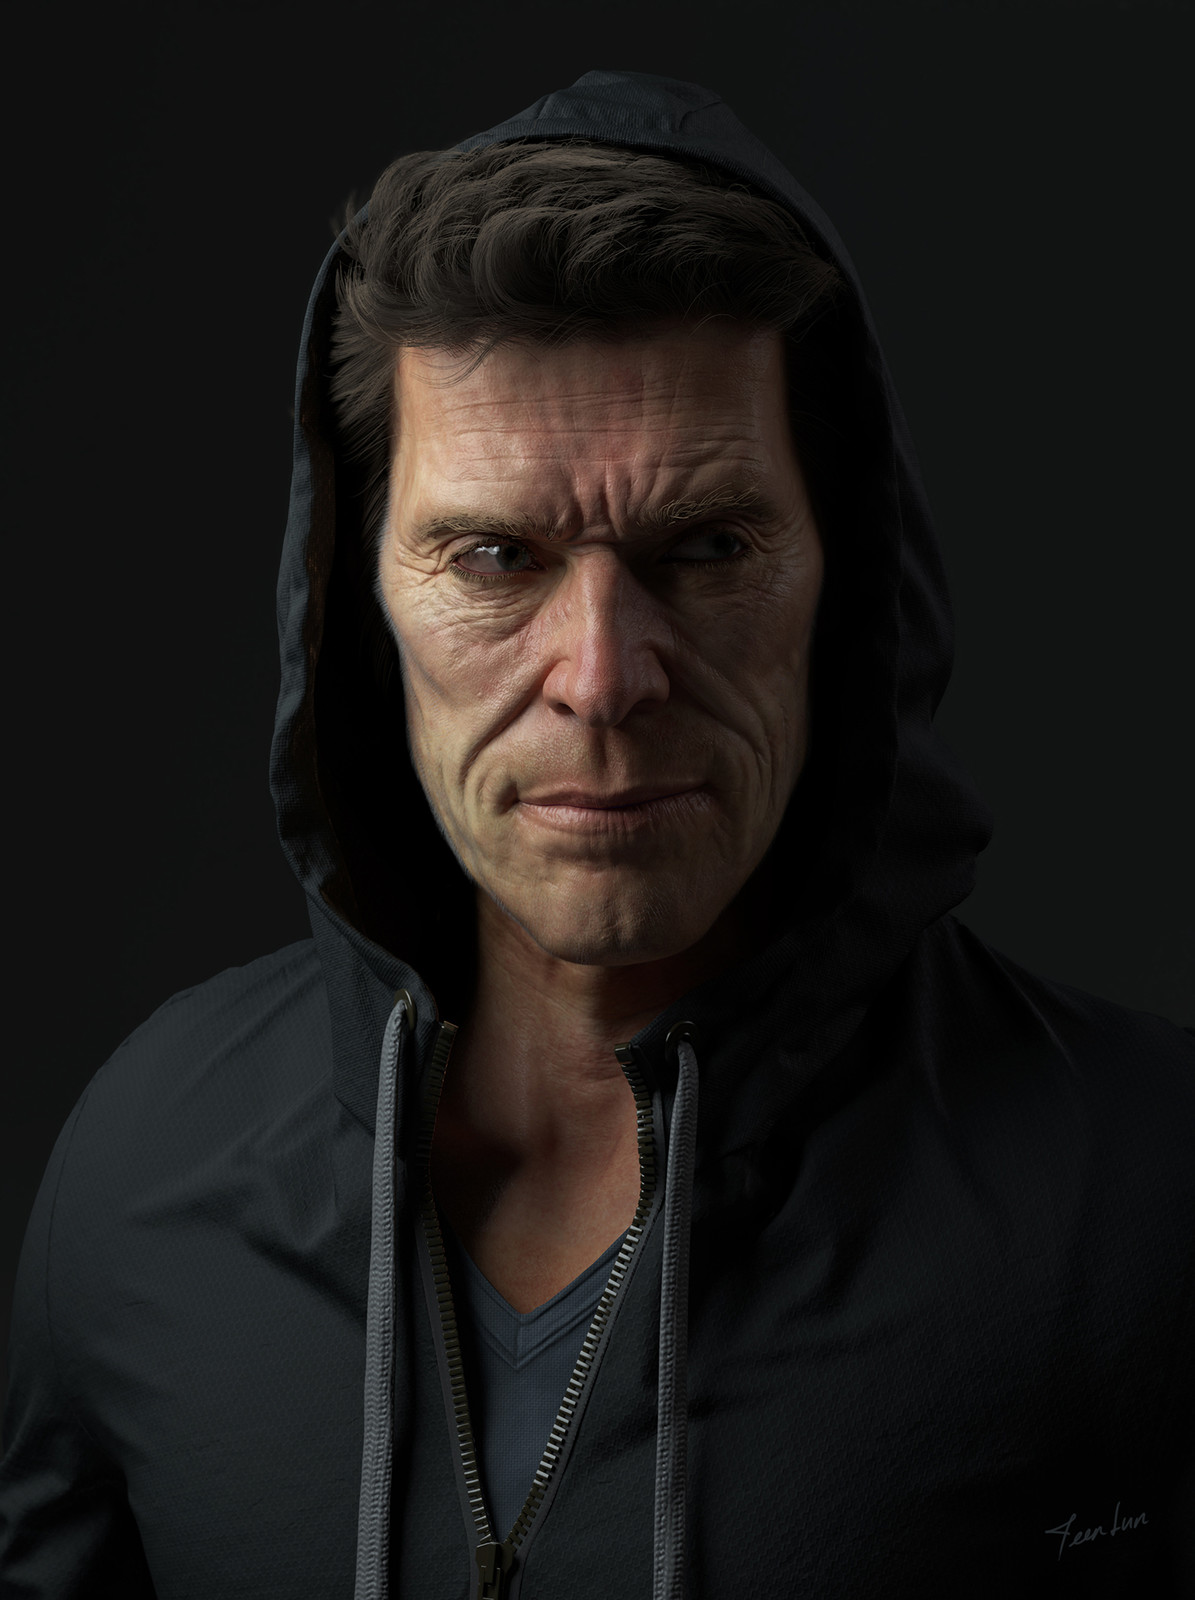 The Portrait of Willem Dafoe 2